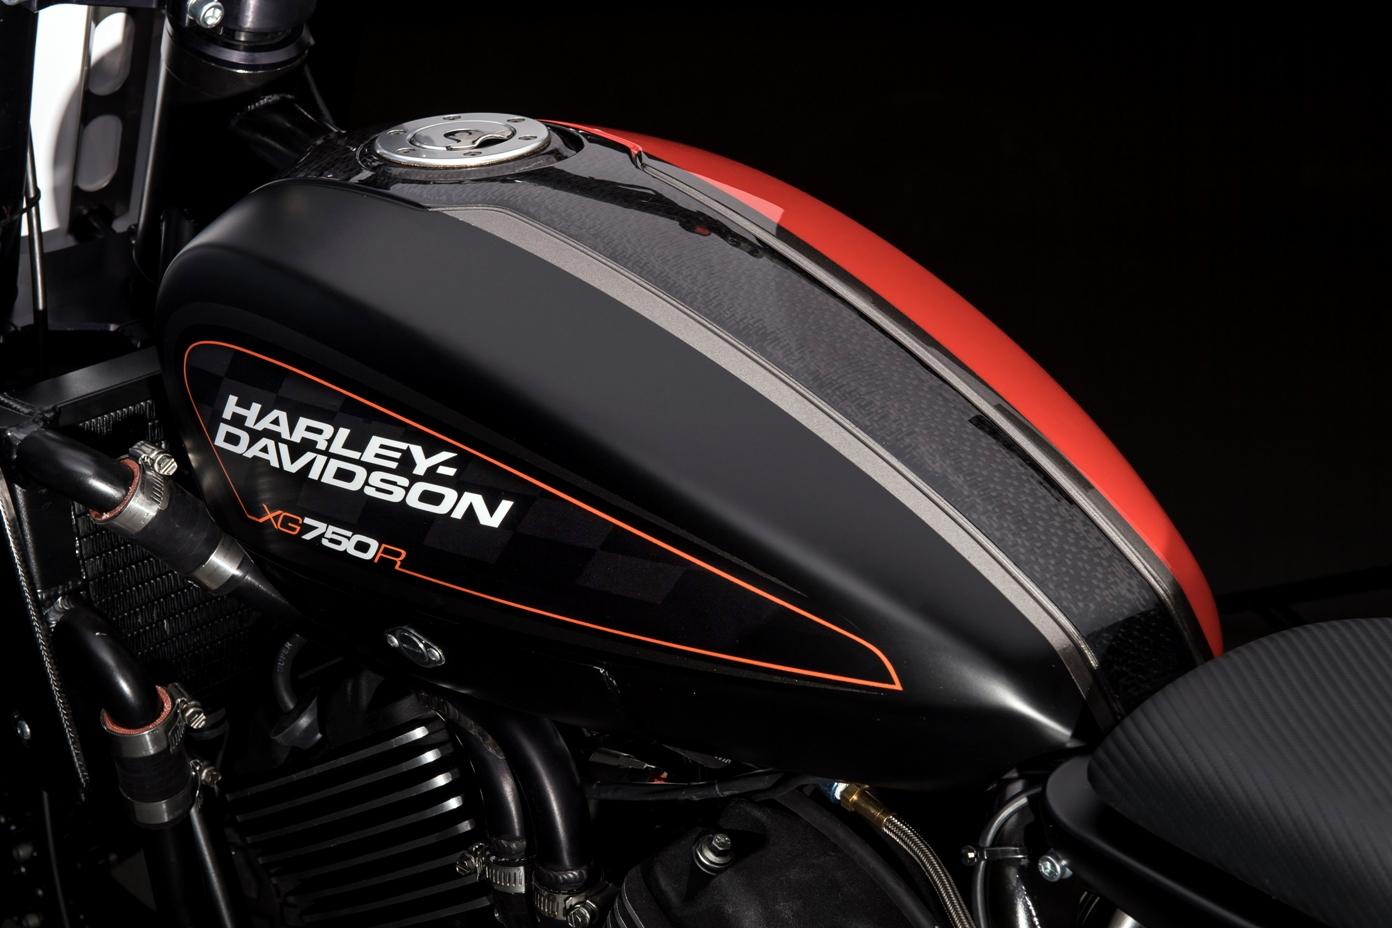 Harley Davidson XG750R - 2016 - black red